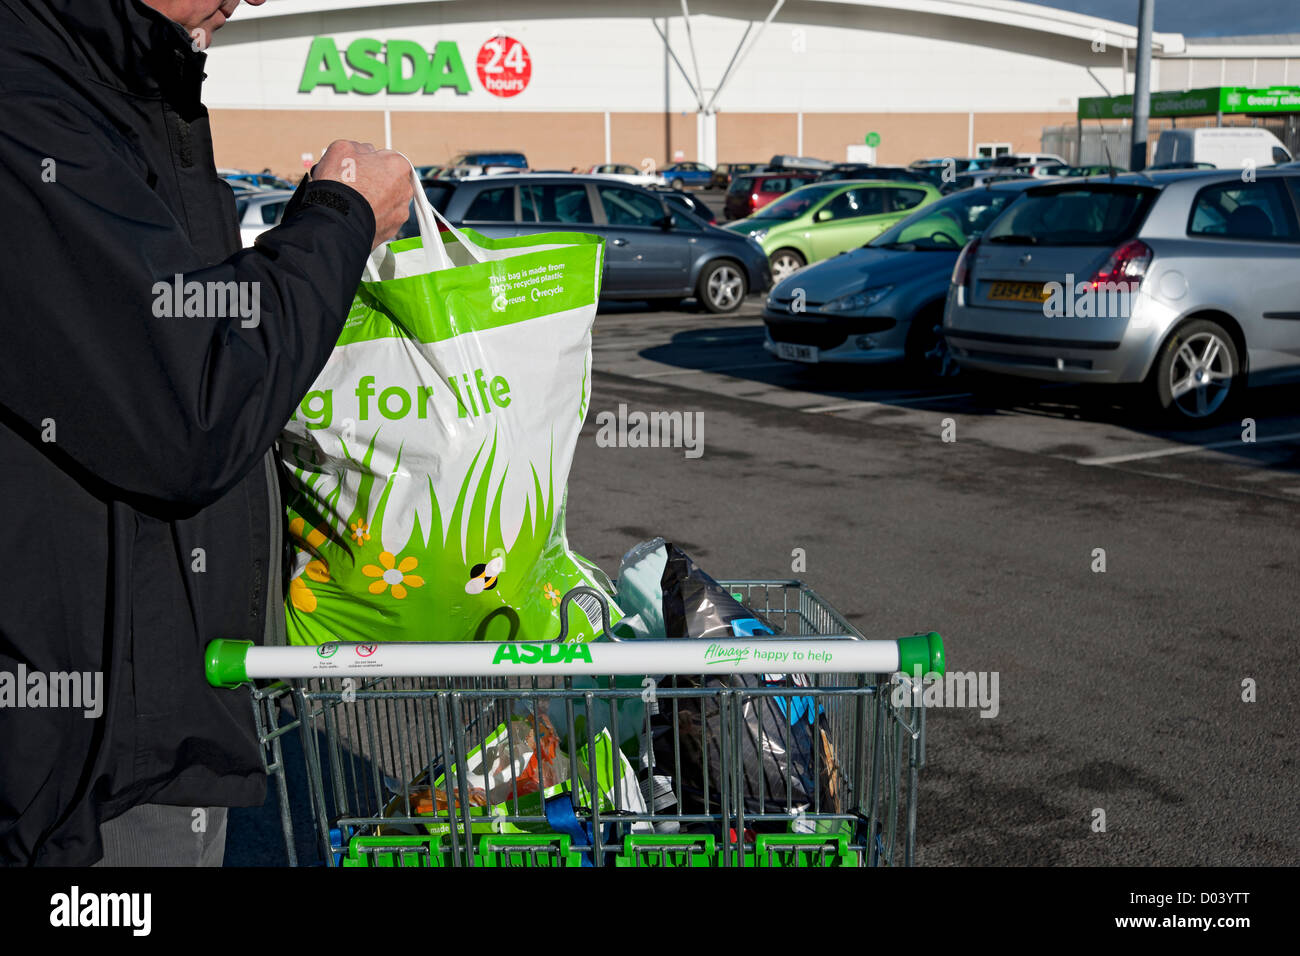 Man with ASDA shopping bags in trolley England UK United Kingdom GB Great Britain - Stock Image